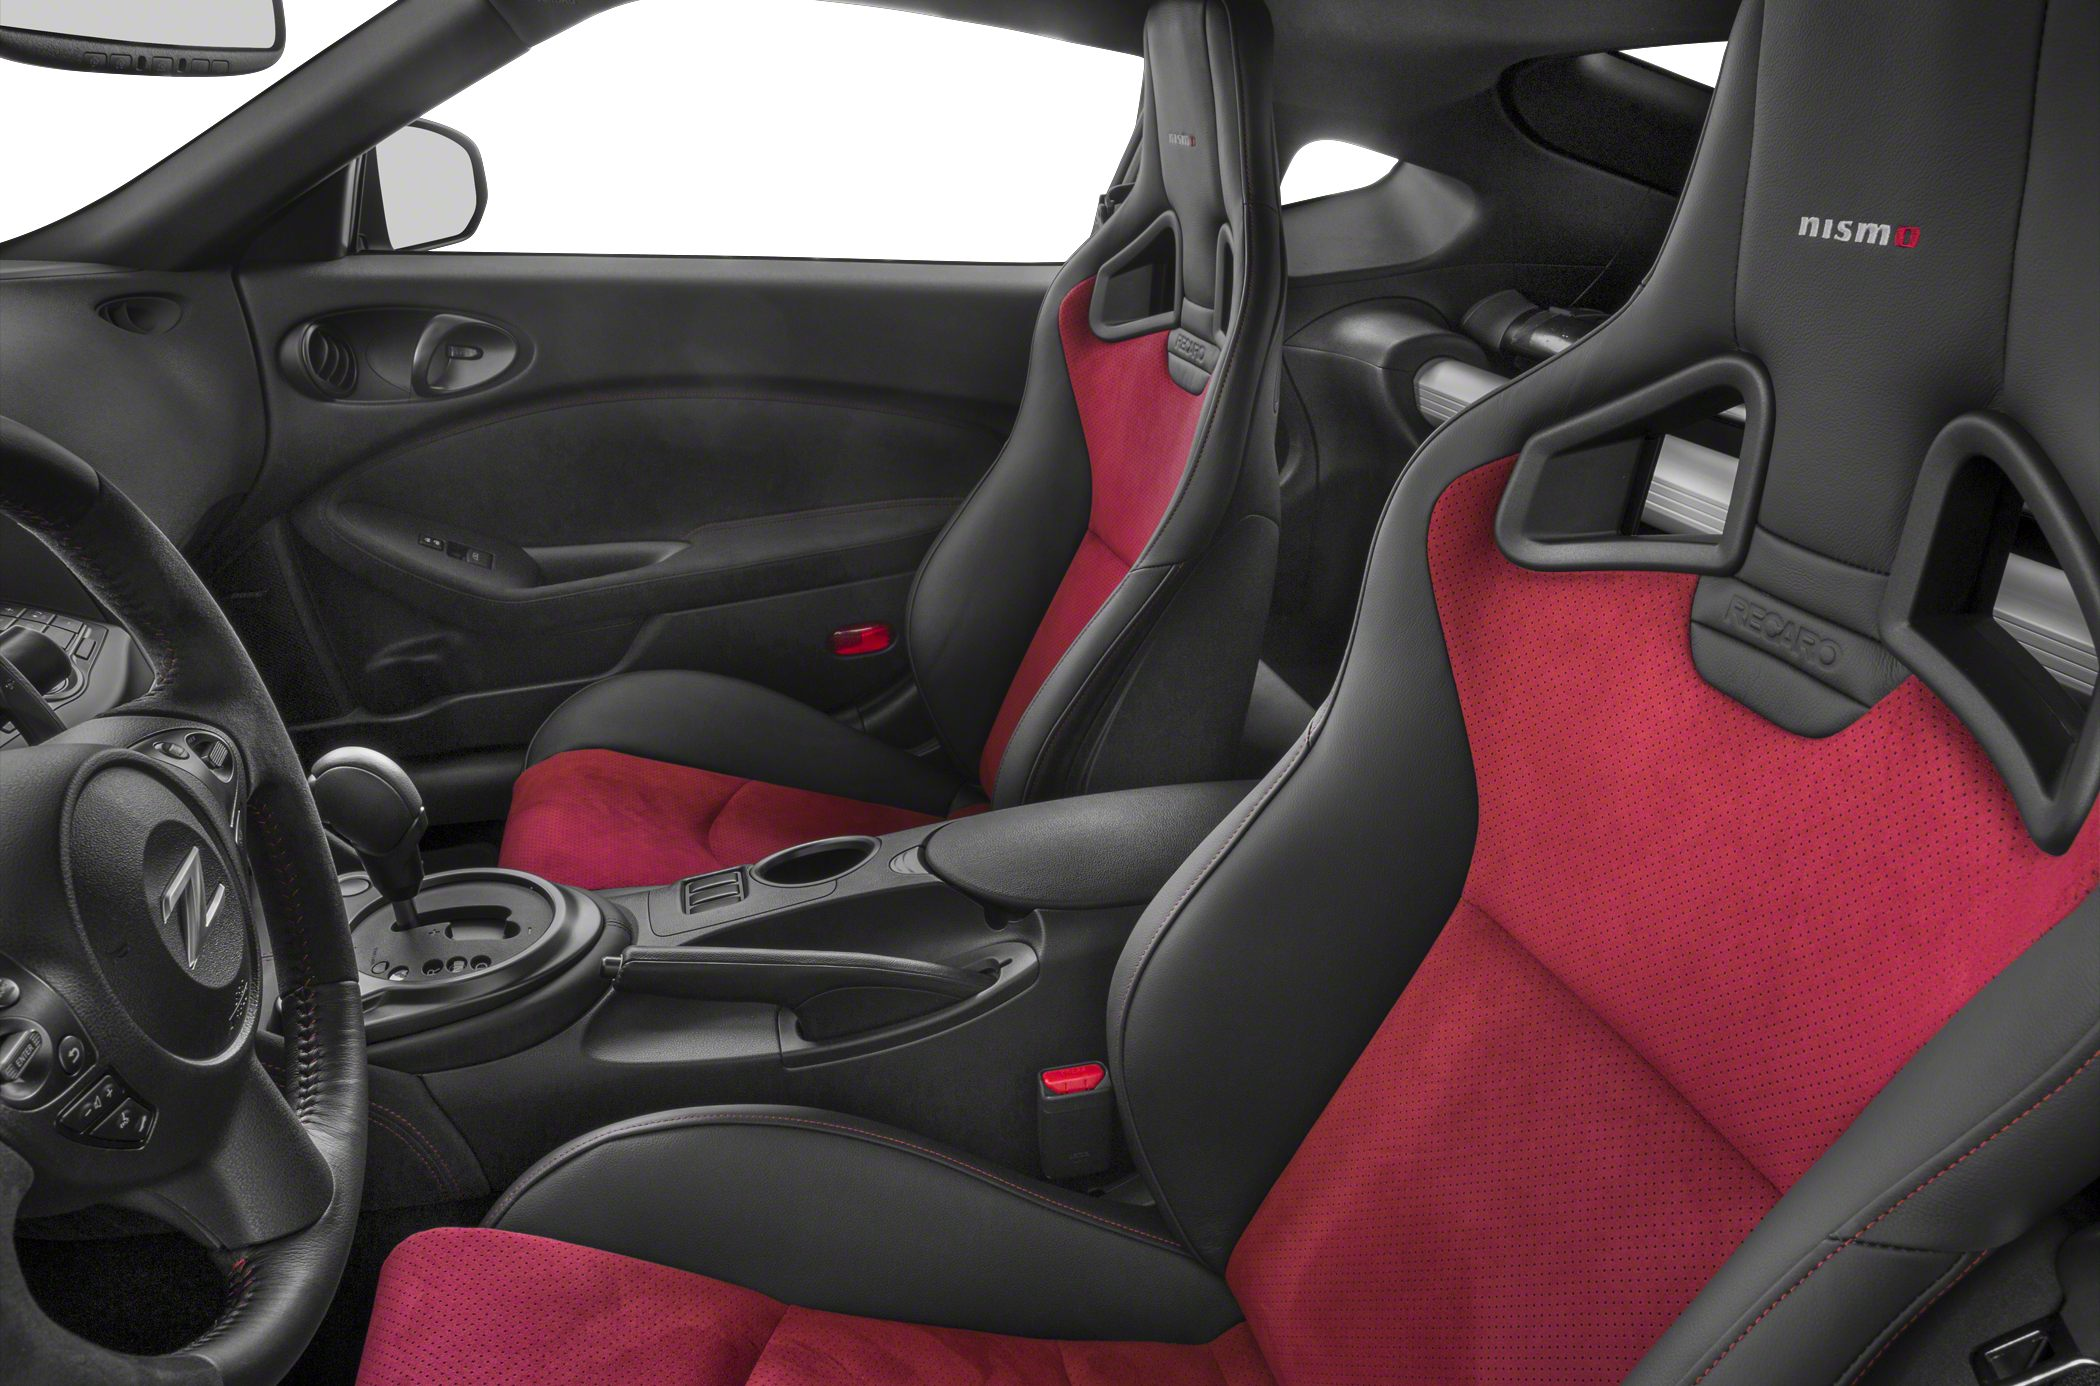 2017 nissan 370z deals prices incentives leases overview interior pros nissan 370z vanachro Image collections